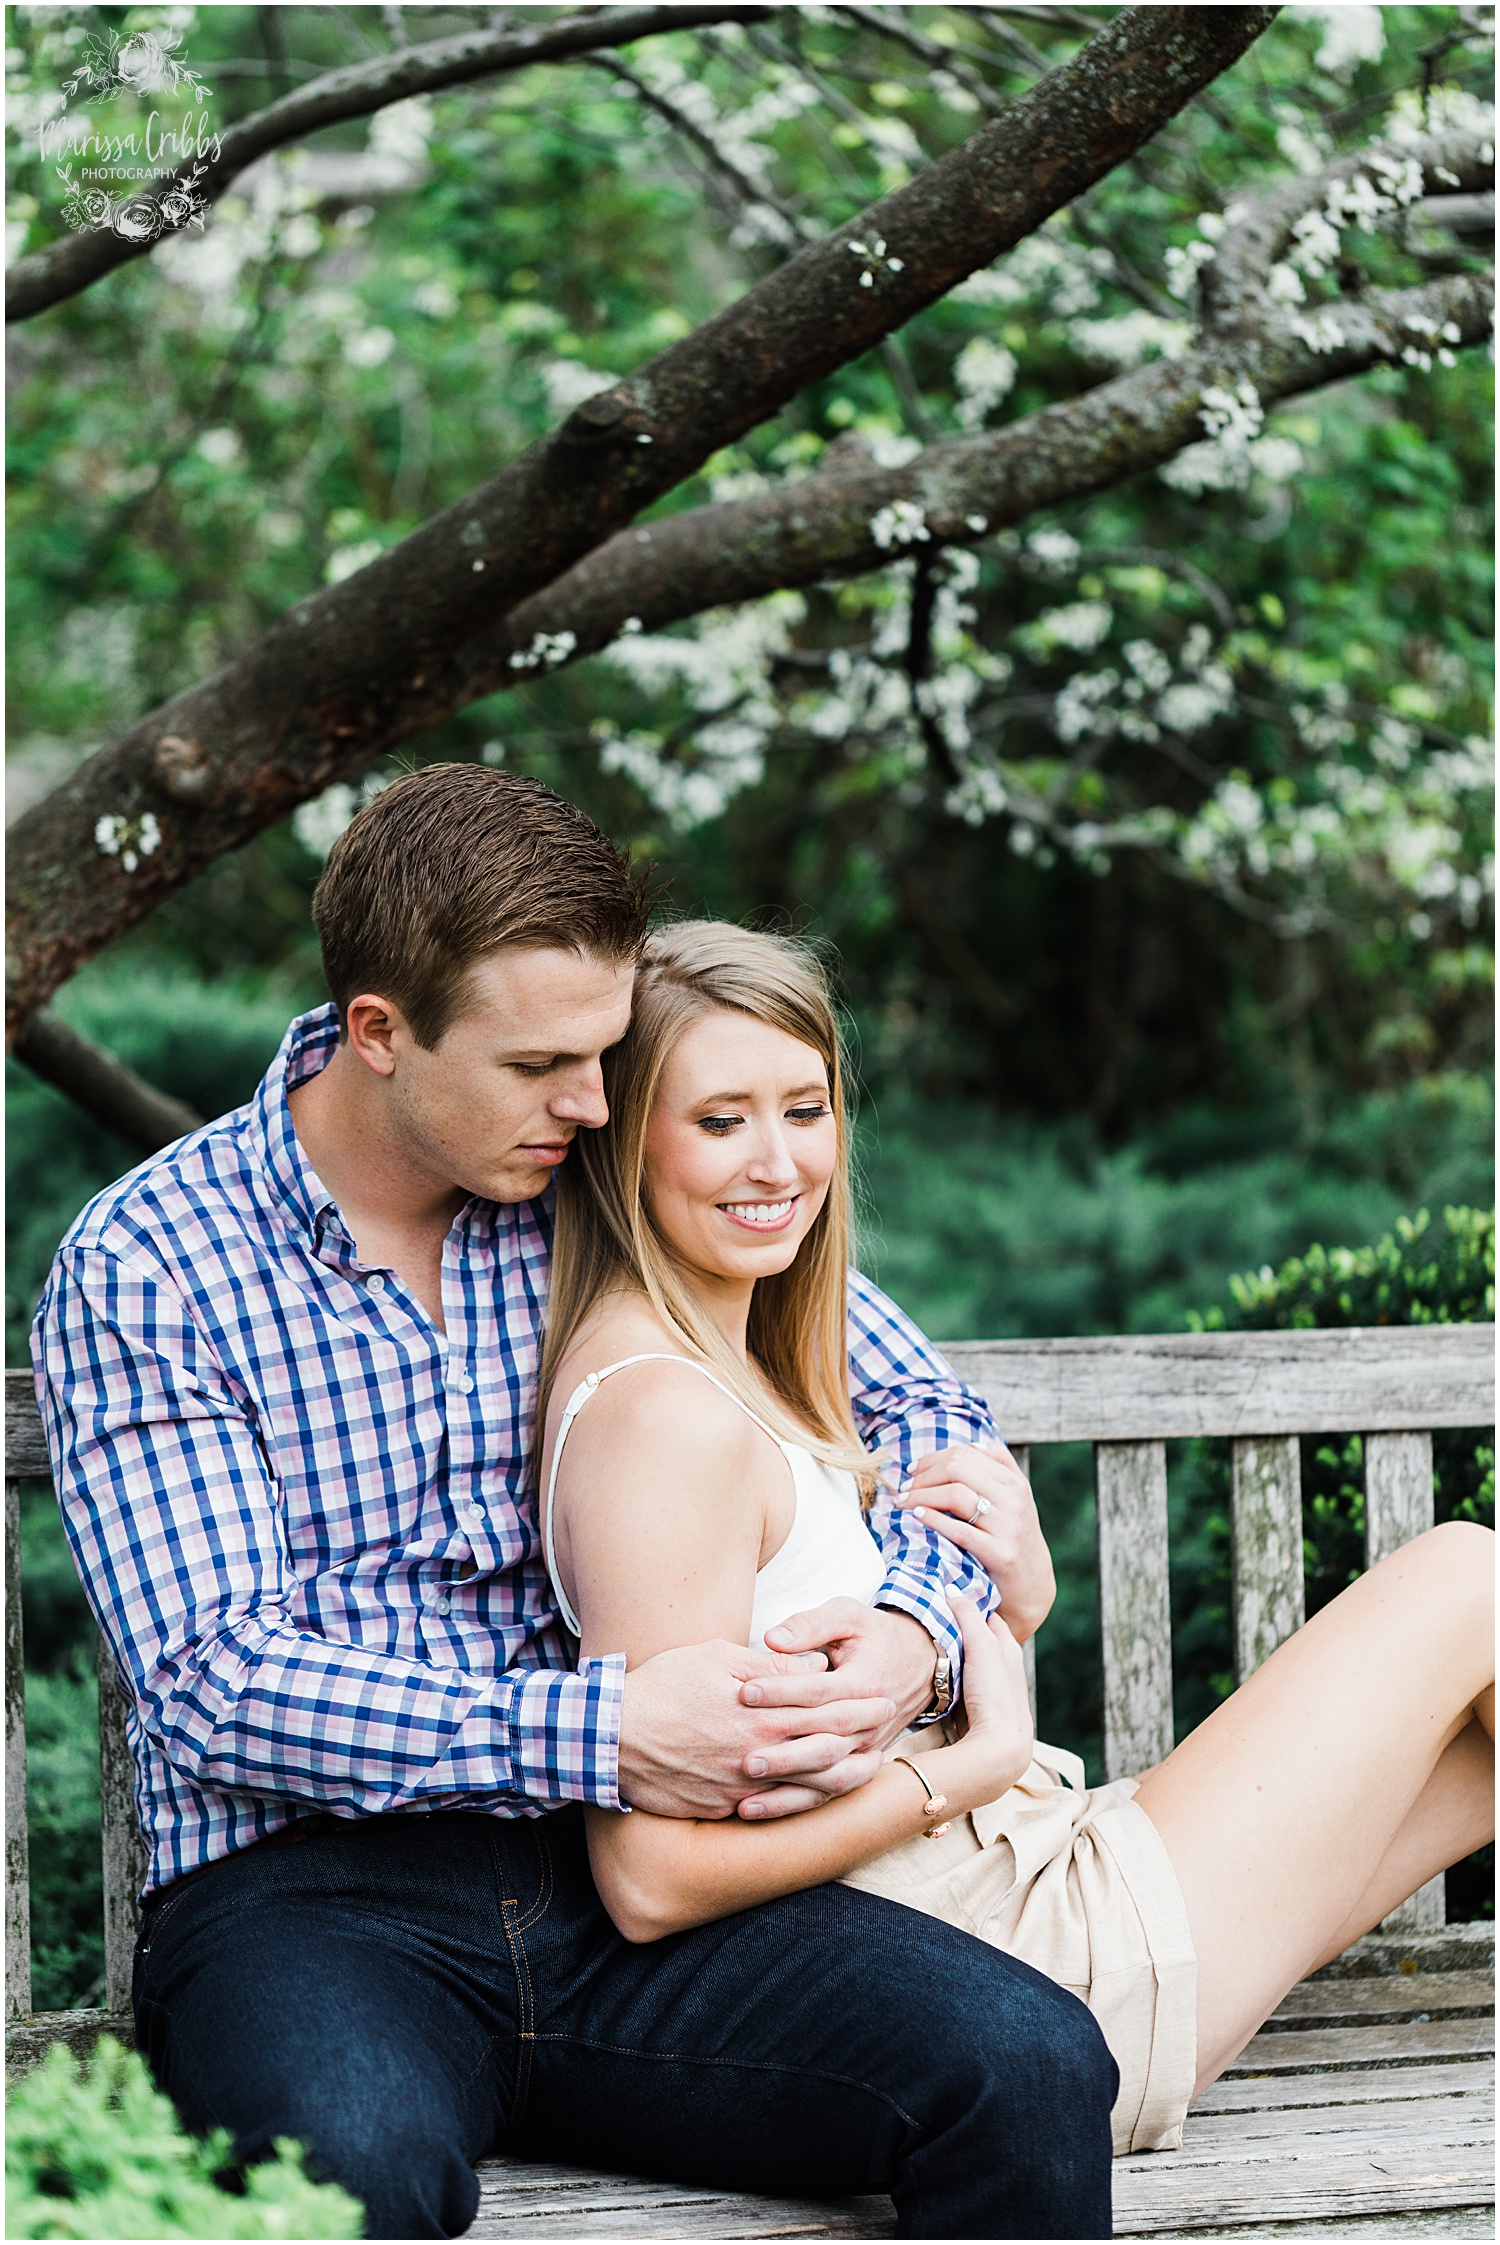 MADDY & KYLE ENGAGEMENT | MARISSA CRIBBS PHOTOGRAPHY_7608.jpg